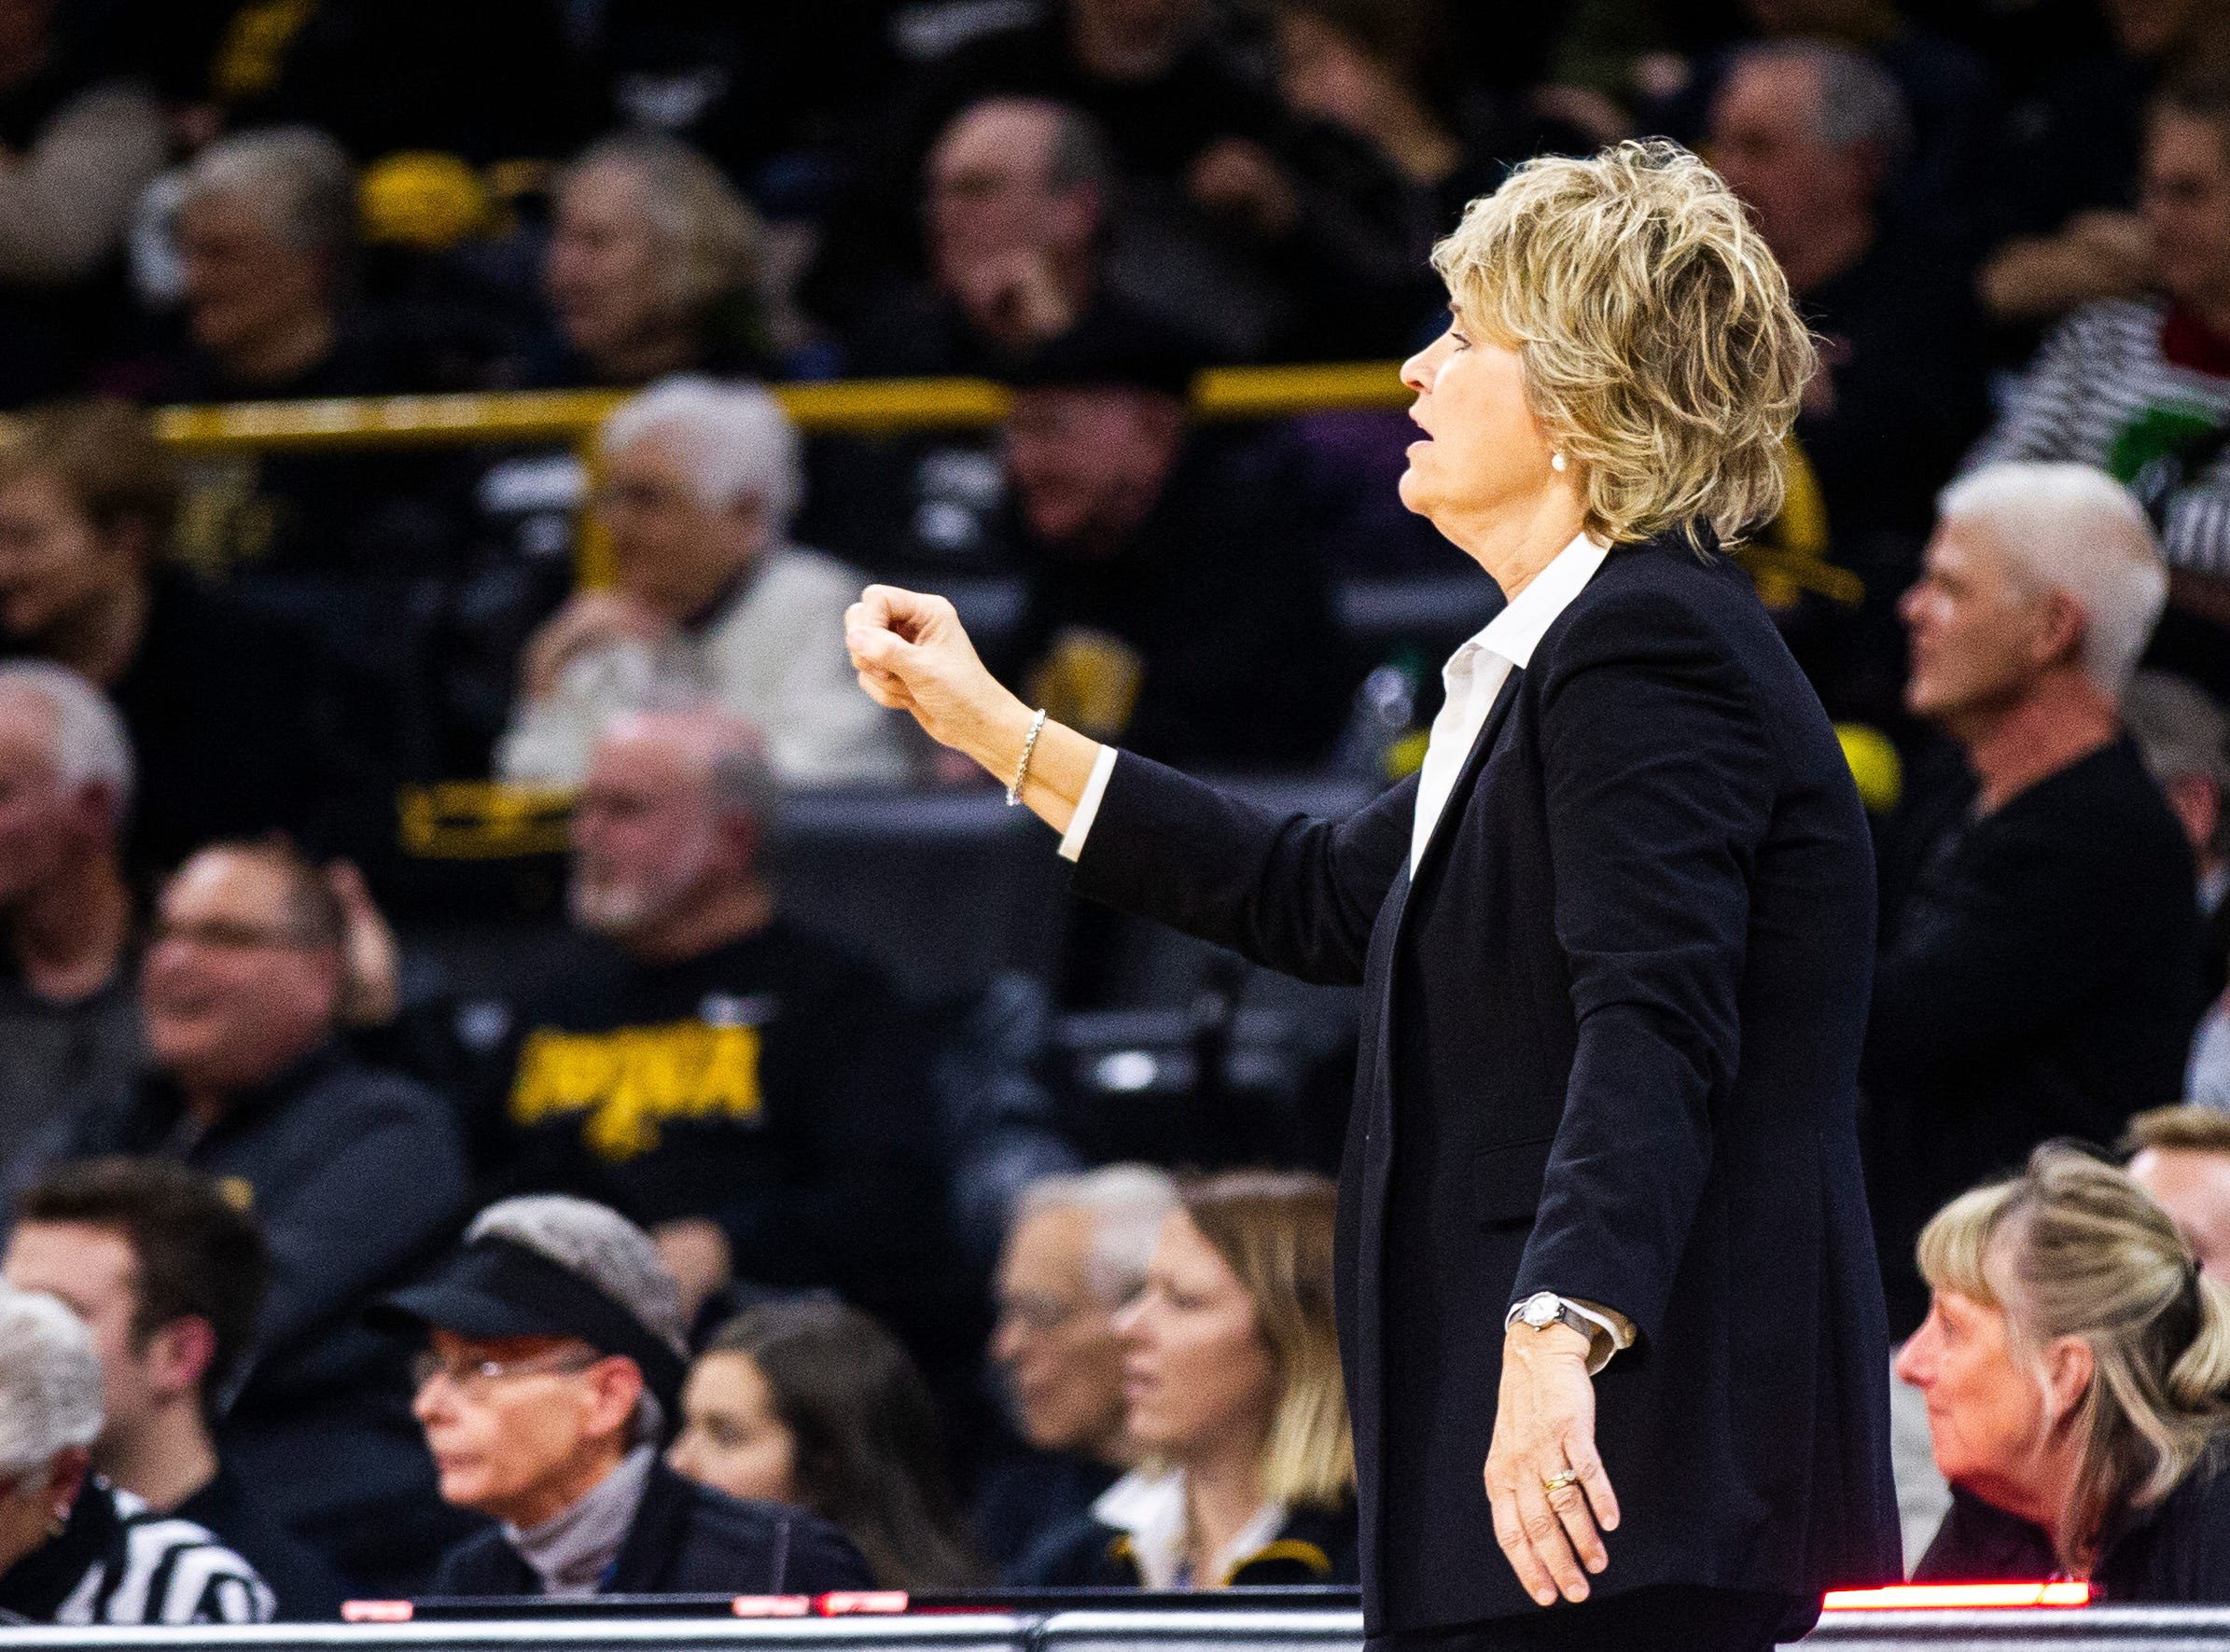 Iowa head coach Lisa Bluder calls out to players during a Cy-Hawk series NCAA women's basketball game on Wednesday, Dec. 5, 2018, at Carver-Hawkeye Arena in Iowa City.